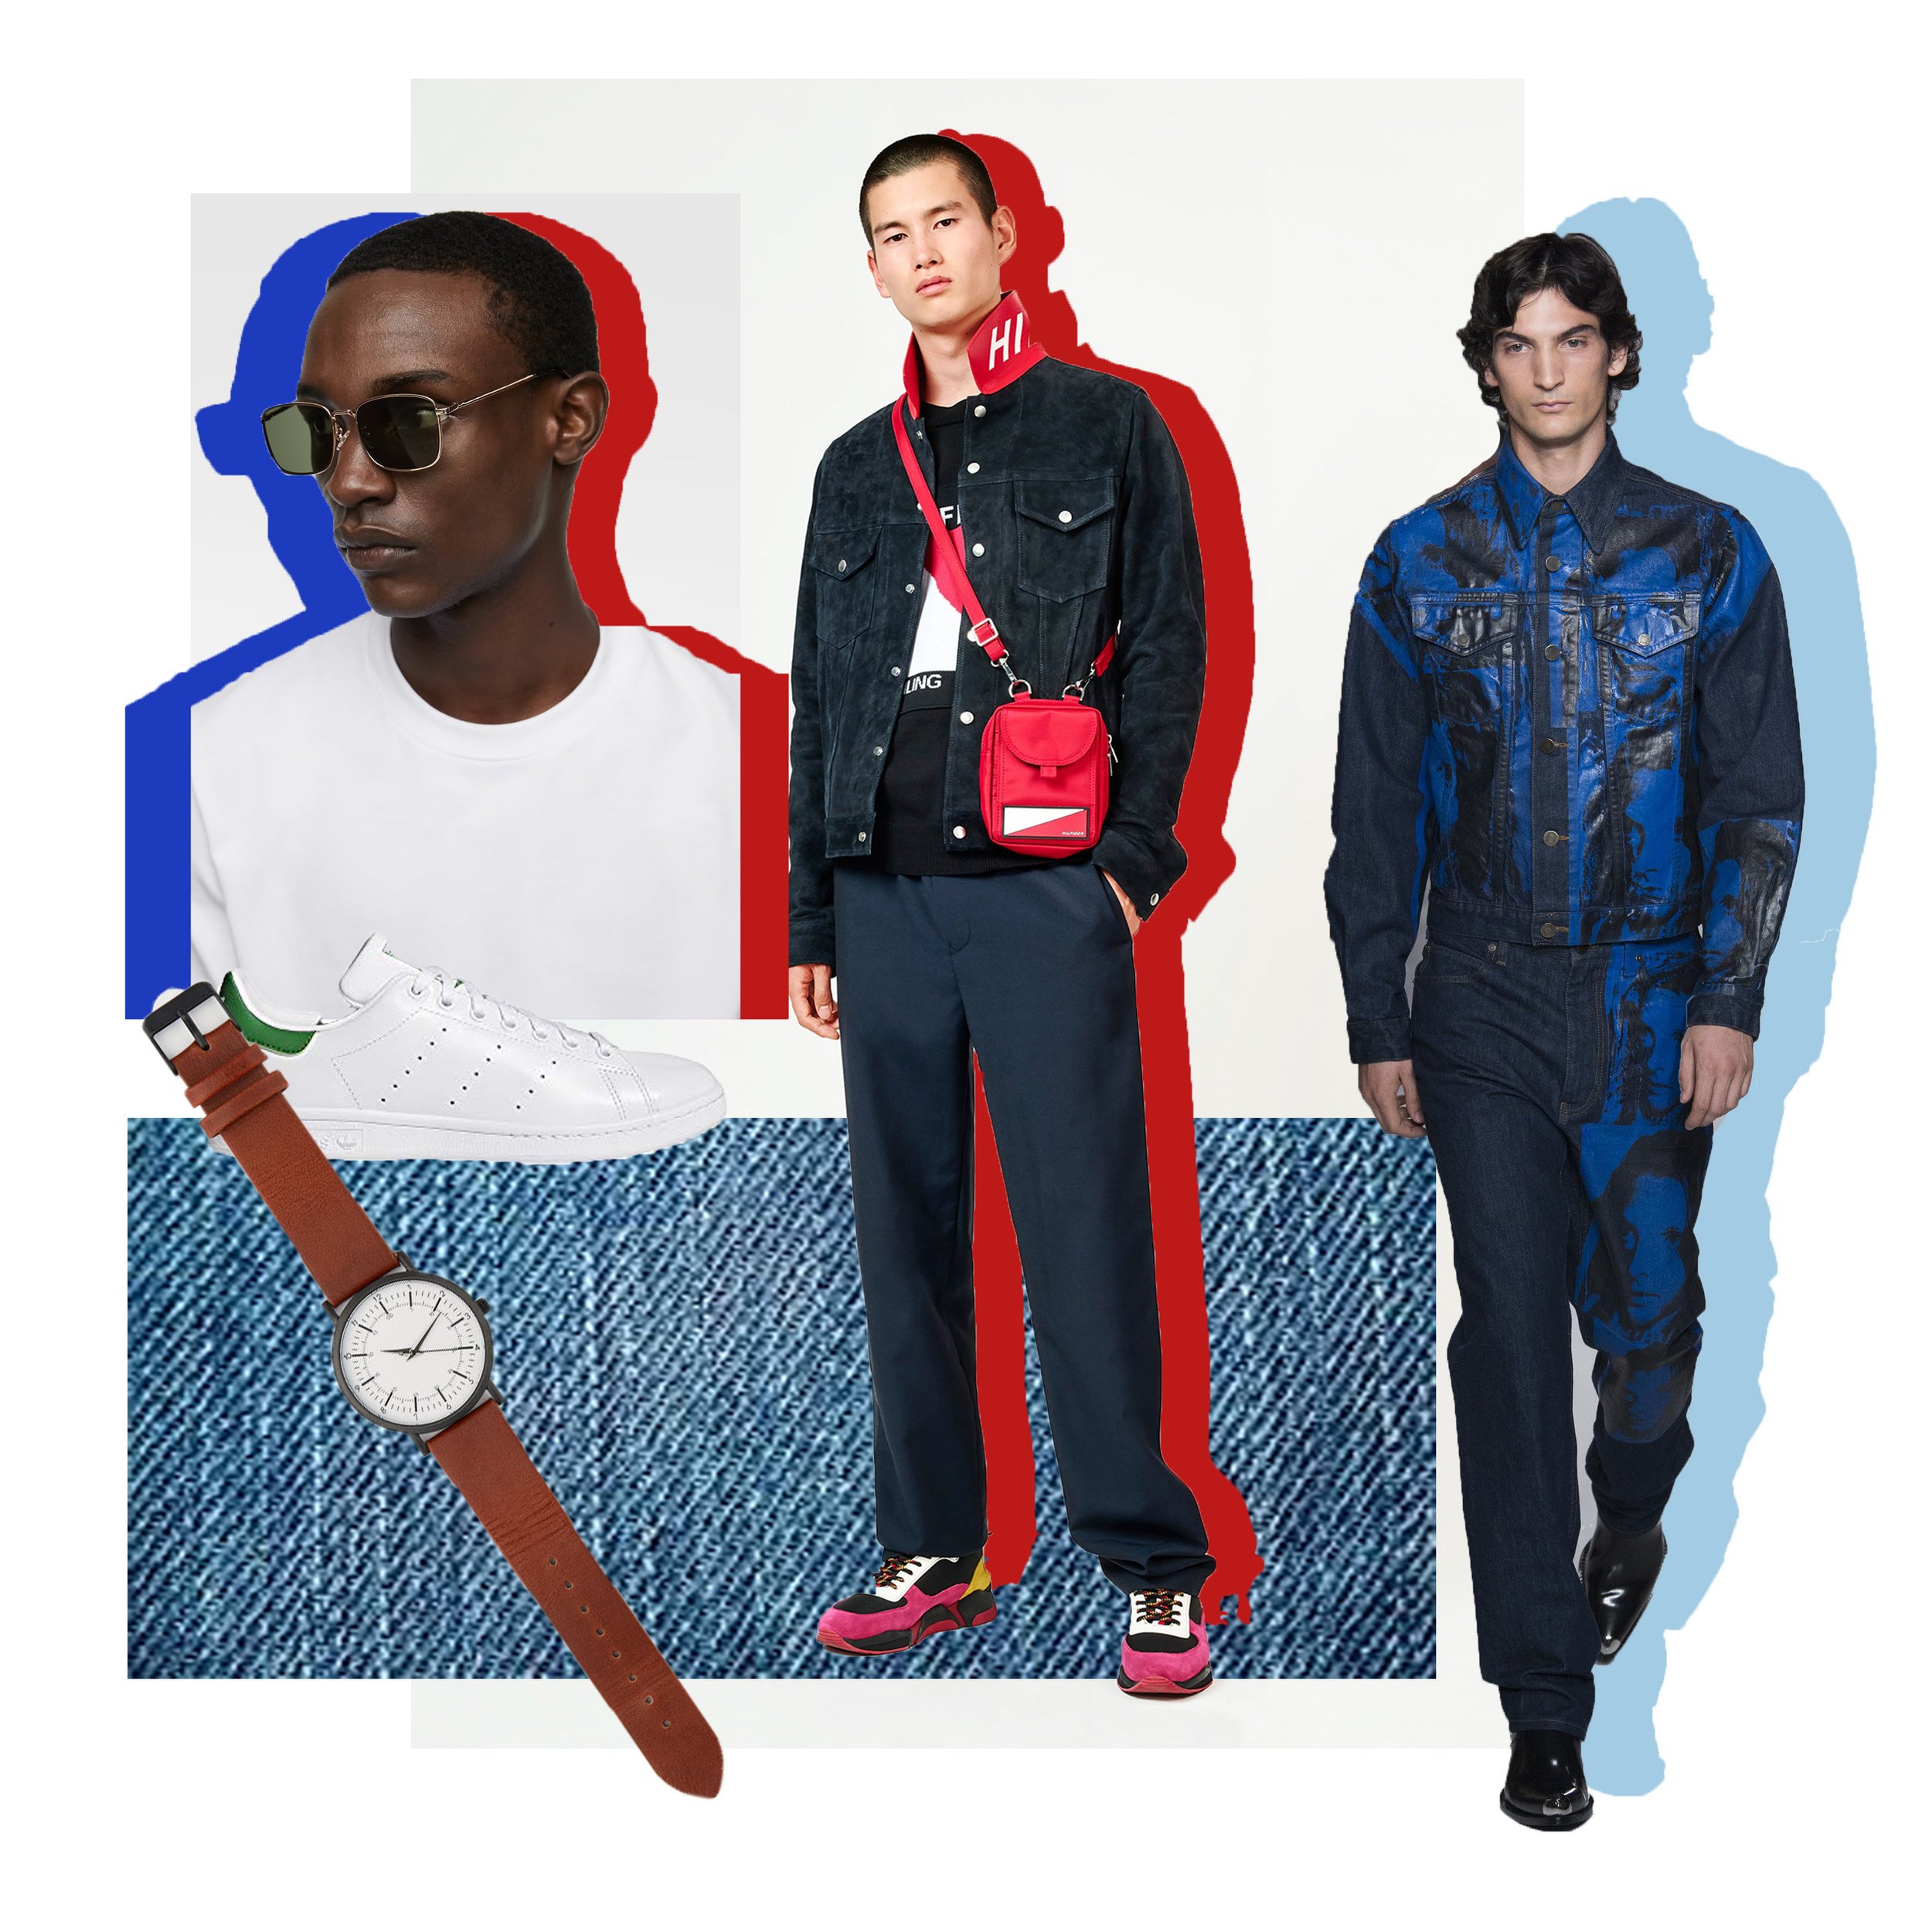 The American Boy - Trends for this year's show point us towards a reinterpretation of what it means to be American. If Kanye can rock denim to the Met Gala, surely you can find a way to rock it to the MODA Fashion Show. Pair a shirt coat with a white dress shirt, light-wash denim jeans and white sneakers for a low-key take on the trend. Or trade in the coat for a red, white and black bomber jacket to take the look in a sportier direction. For accessories, a simple watch, sunglasses or even a cross body bag will add practicality and personality to your all-American staples. It's a super easy way to take a daytime outfit into the night.